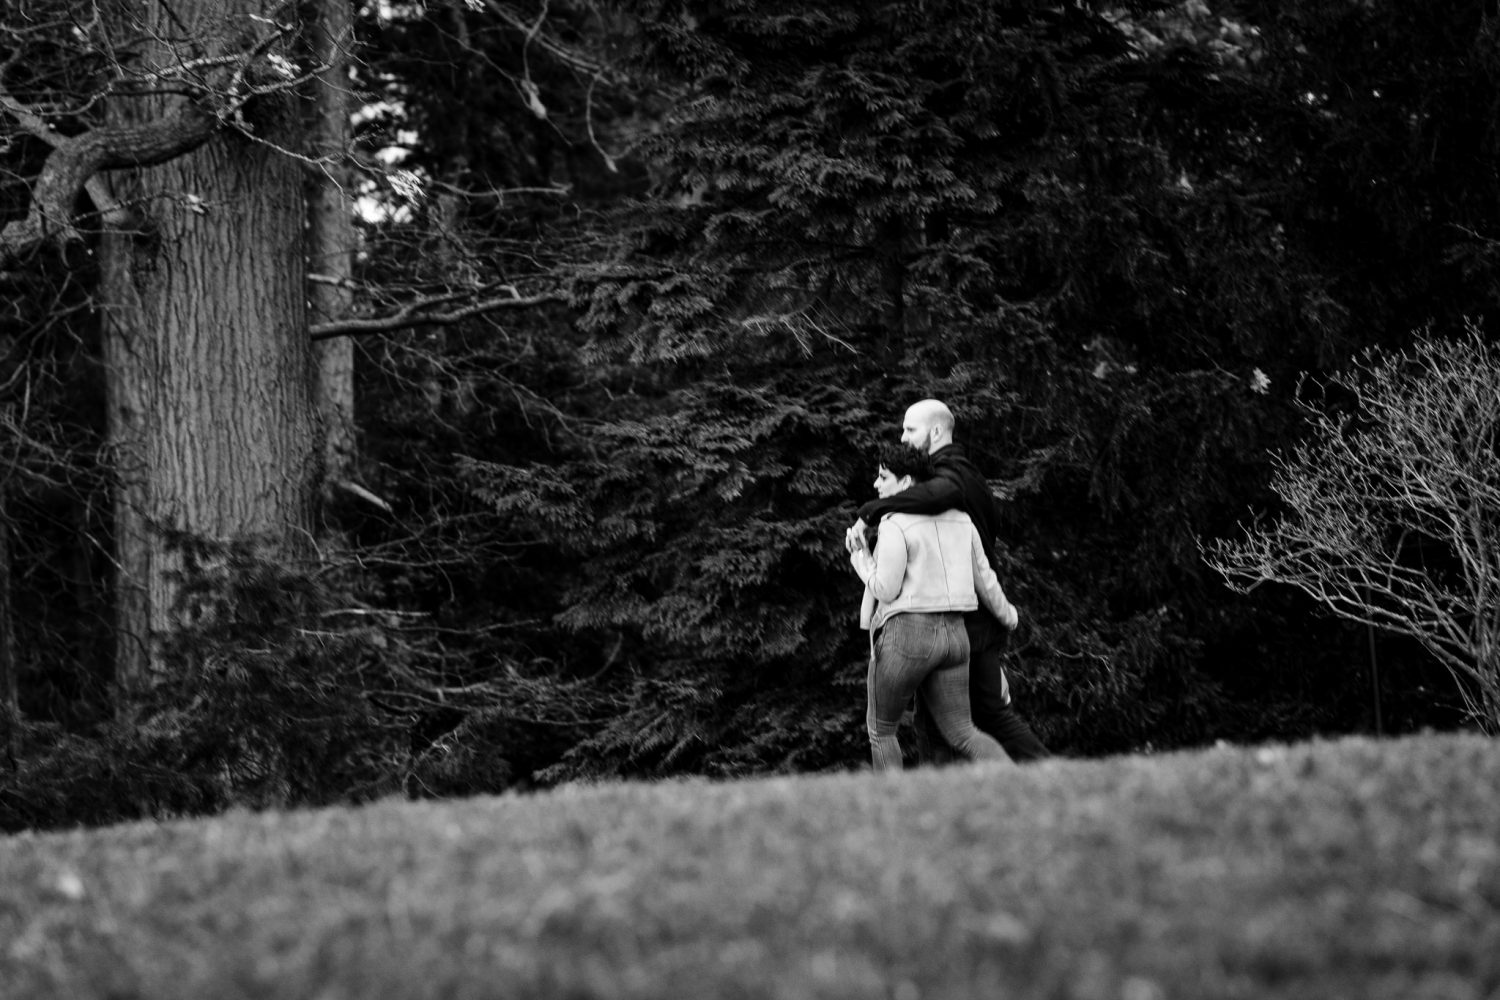 A black and white photo of a man and his girlfriend walking, he is about to propose.